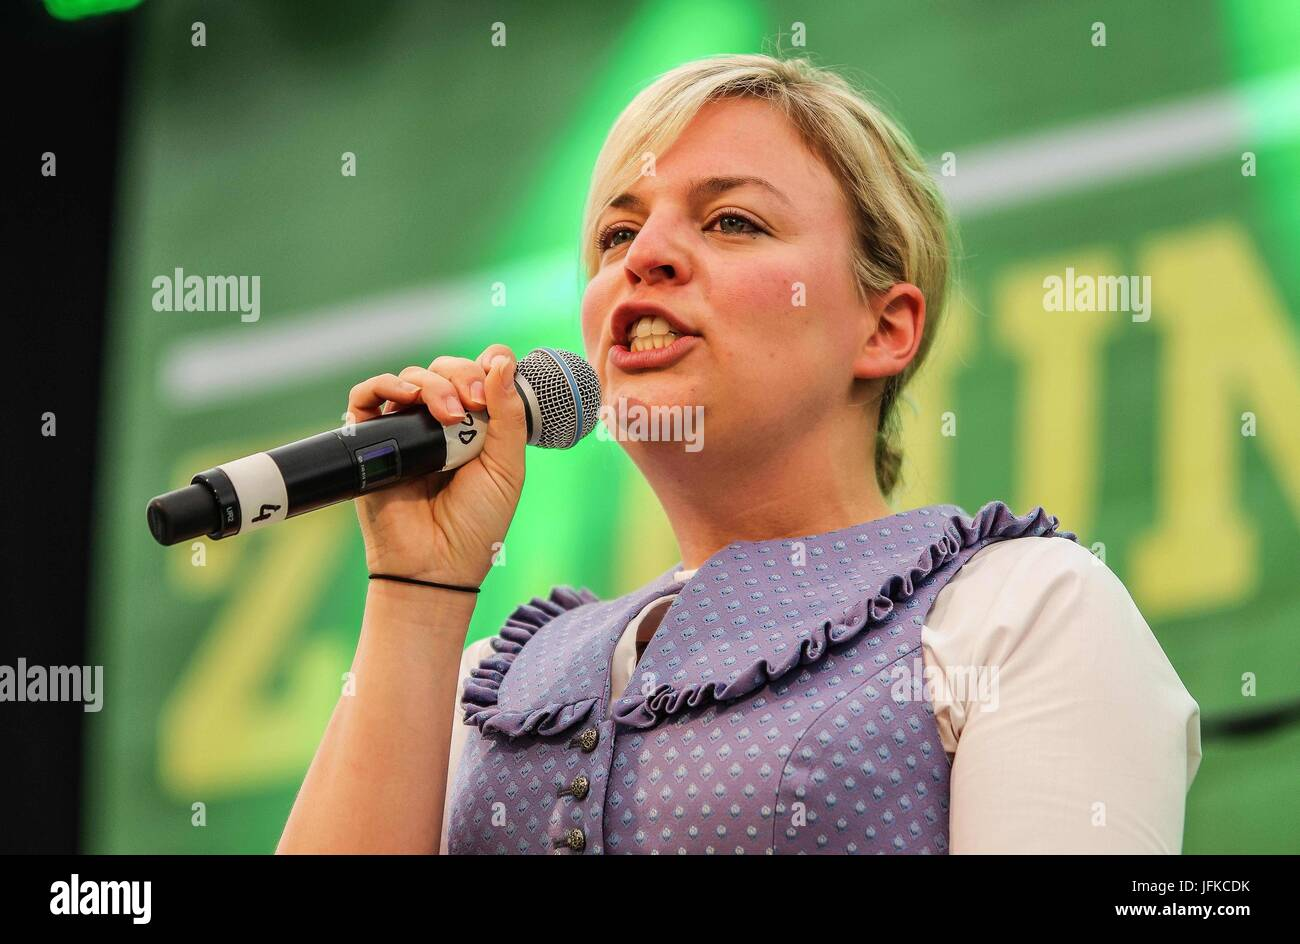 Tutzing, Bayern, Germany. 1st July, 2017. Katharina Schulze of the Bavarian Landtag (Parliament). Green politician Stock Photo